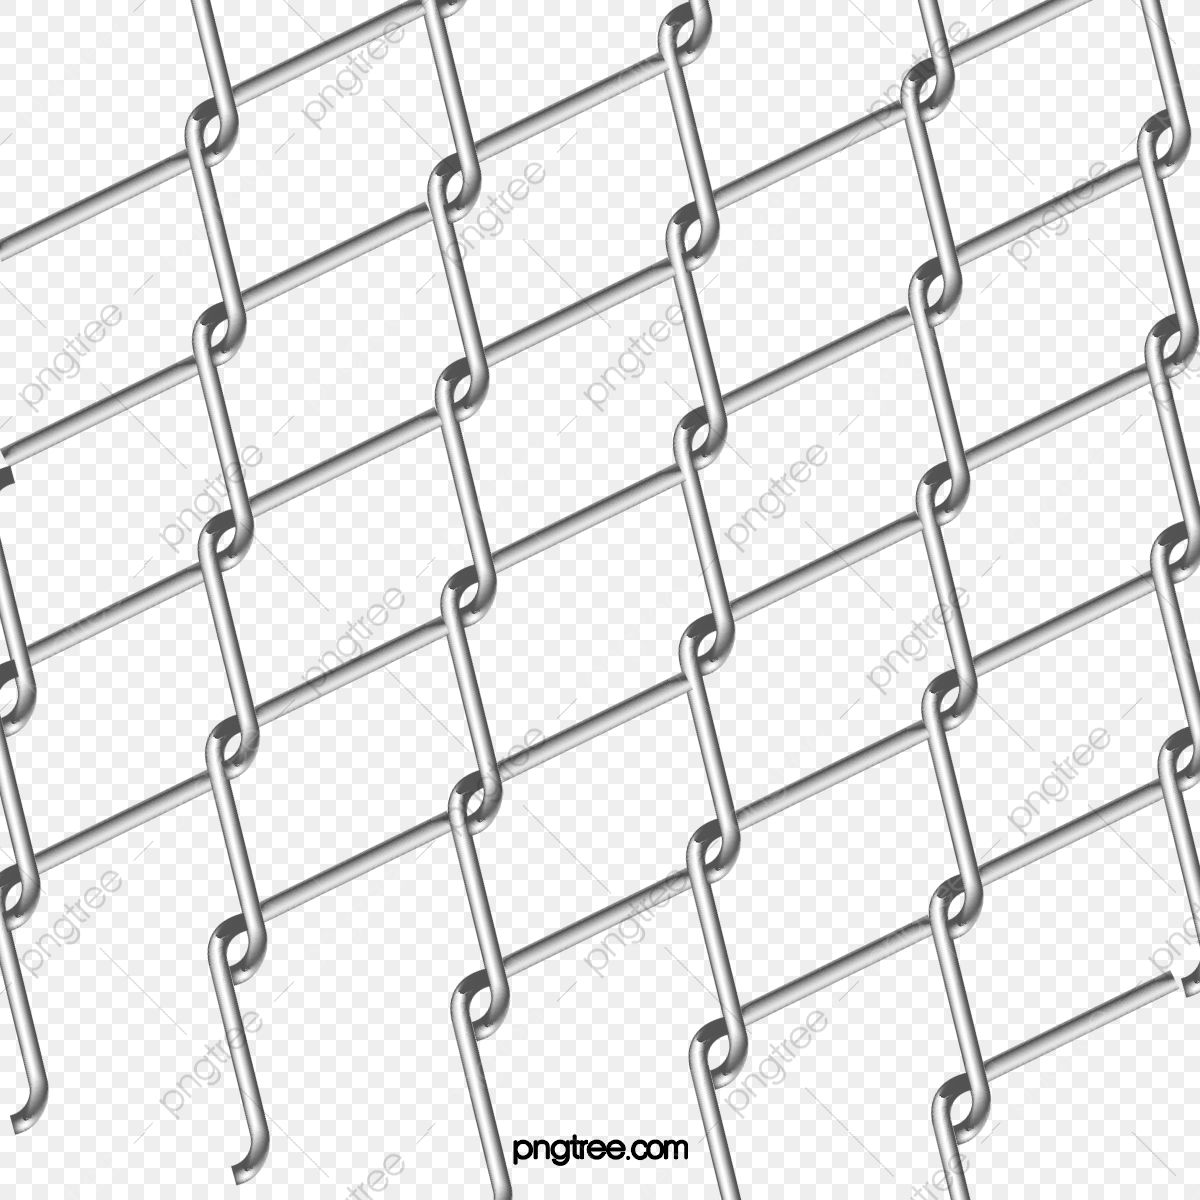 Cartoon Metal Barbed Wire Cute Illustration Wire Mesh Metal Gradient Png Transparent Clipart Image And Psd File For Free Download Cute Illustration Illustration Barbed Wire